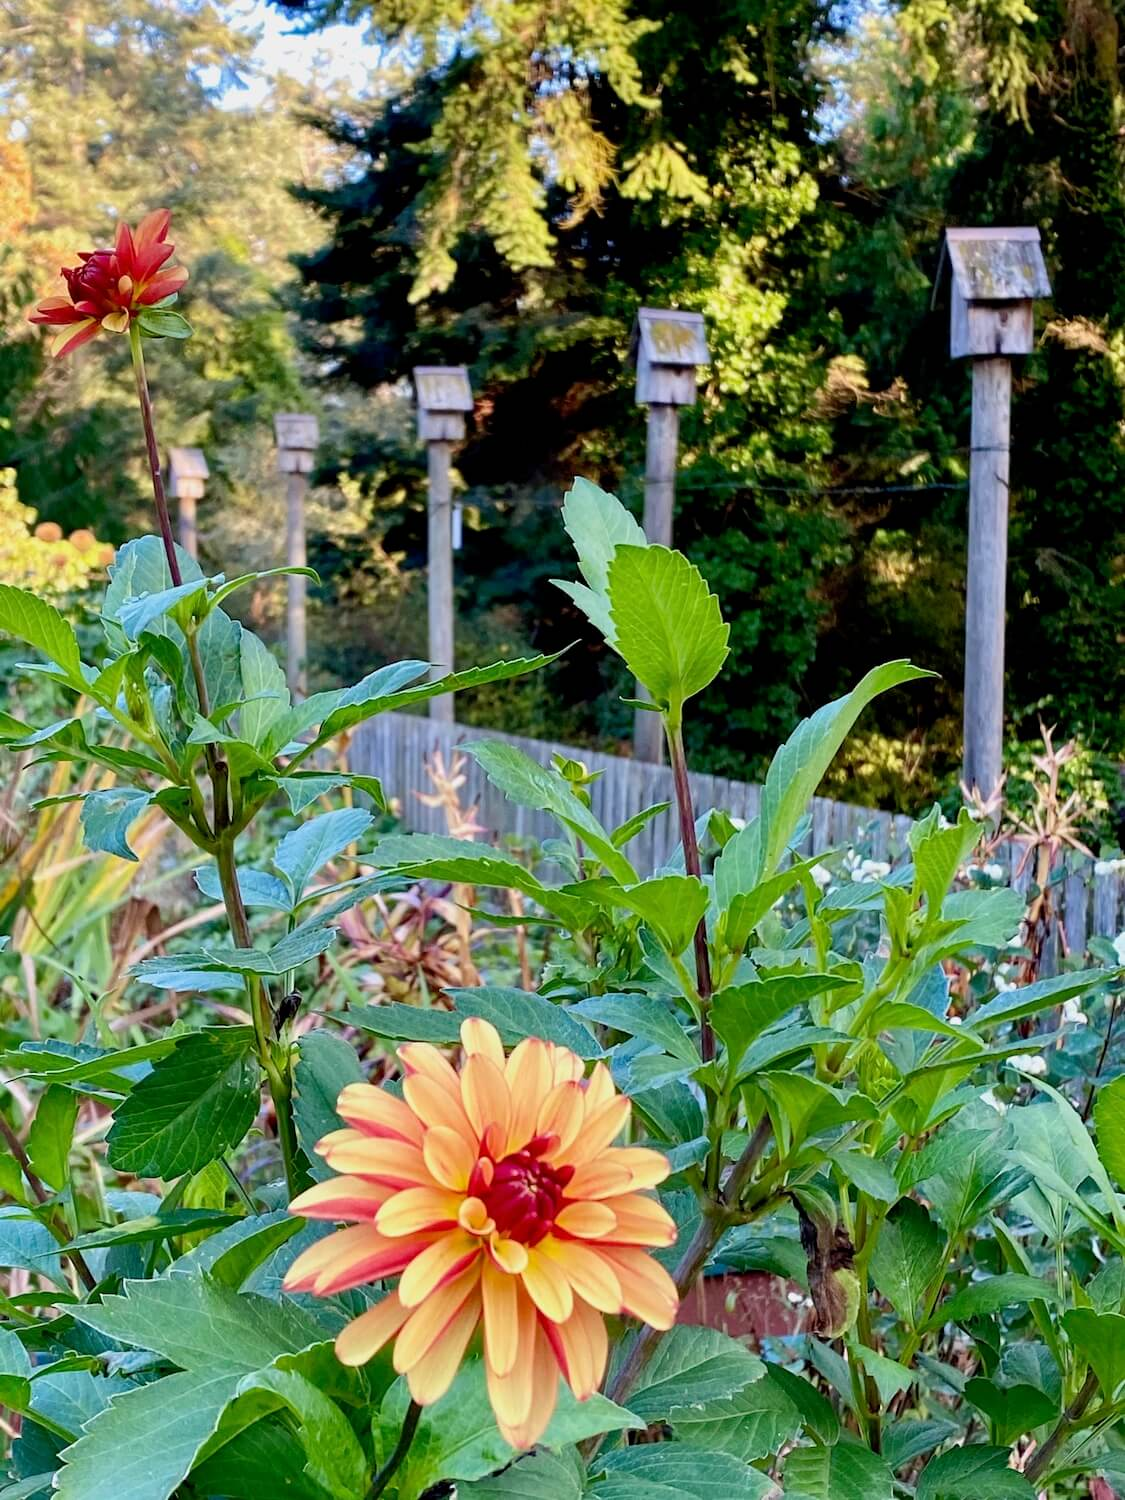 A bright orange dahlia blooms in a wood fenced in garden with another darker red flower open in the distance. The garden is surrounded by tall posts that host tiny birdhouses. There are fir trees in the background under patches of blue skies.